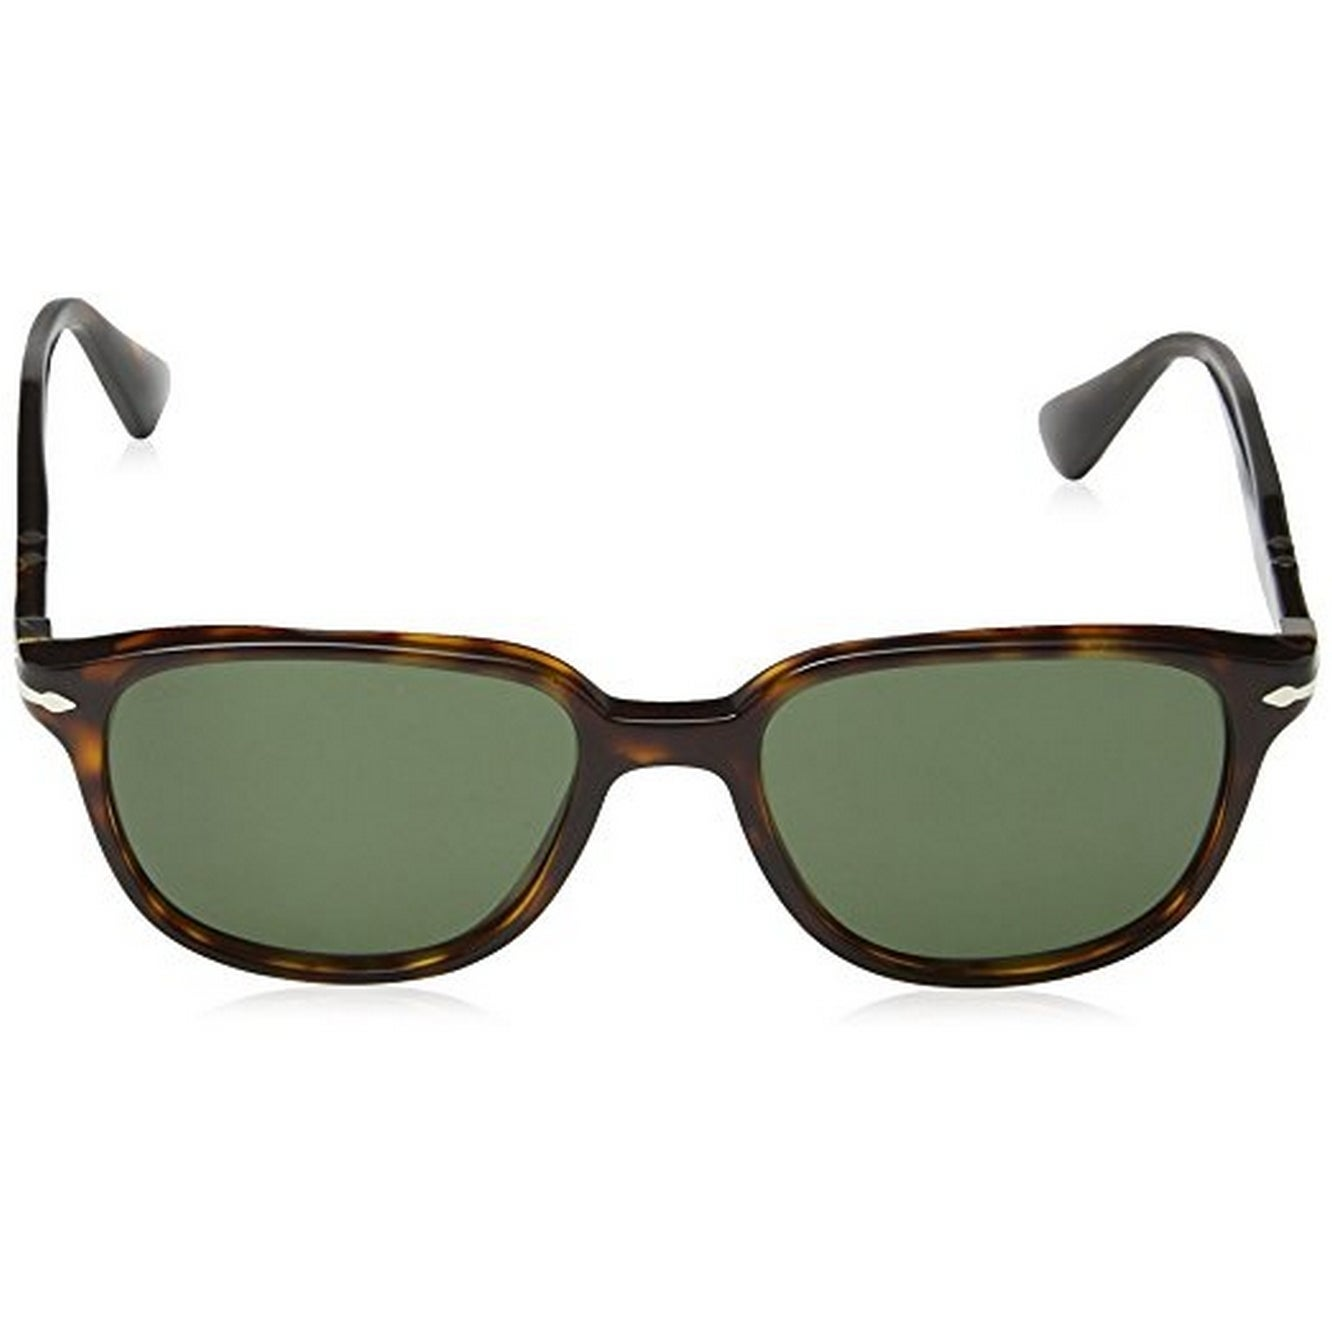 3289478becab6 Shop Persol Men s PO3149S 24 31 55 Square Plastic Havana Green Sunglasses -  Free Shipping Today - Overstock - 14594623